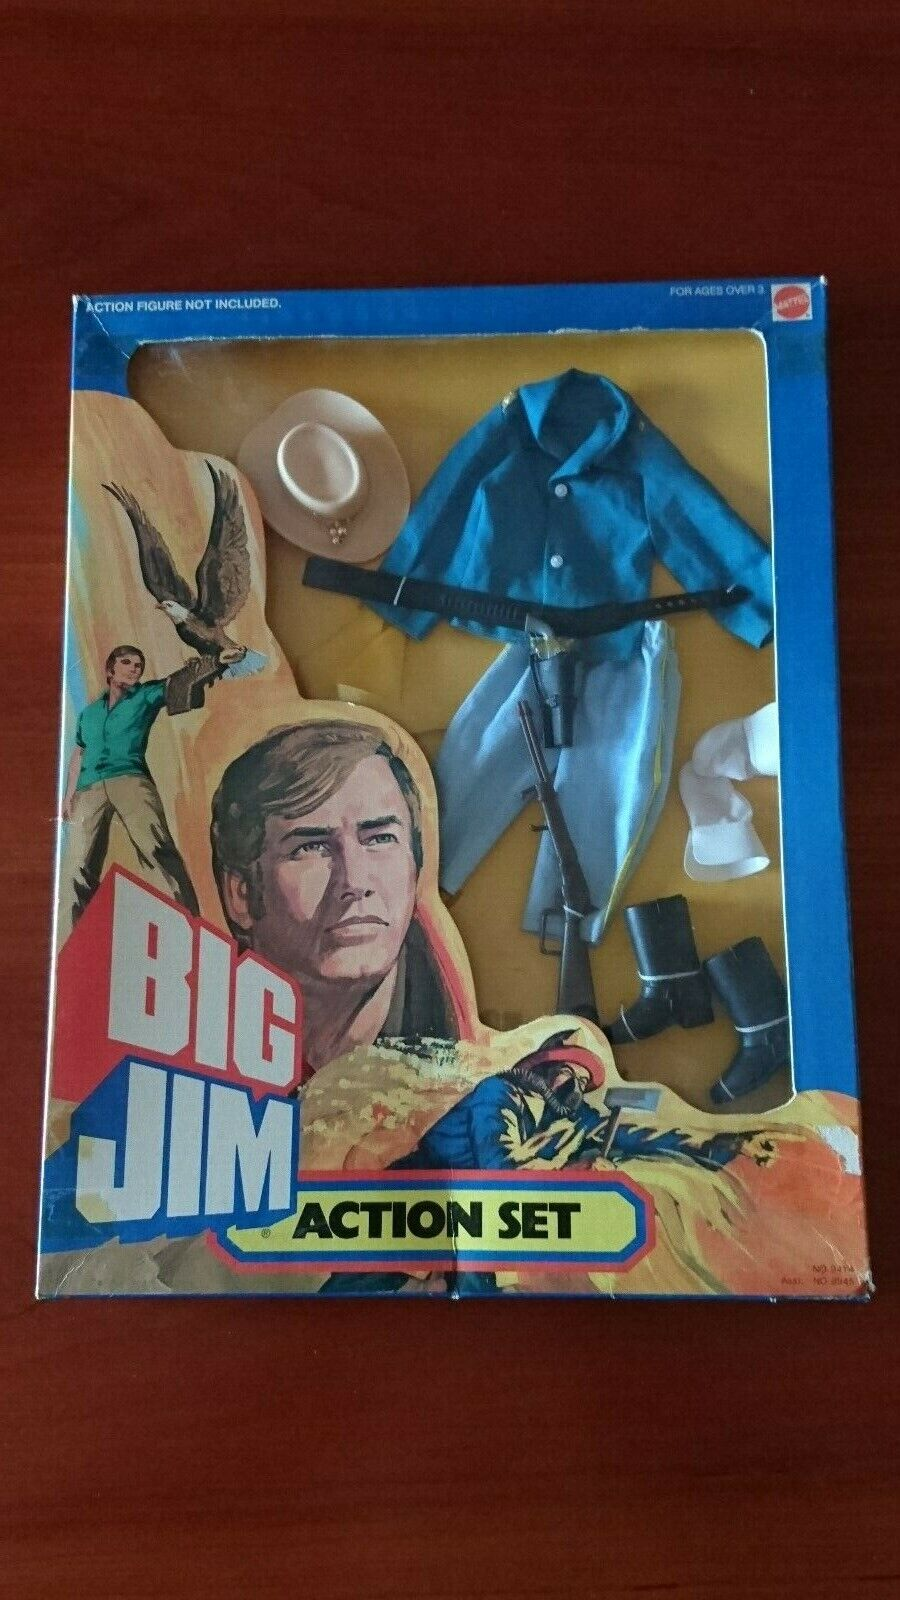 BIG JIM MATTEL ACTION SET OUTFIT   9414   CAVALLEGGERO   CON SCATOLA ORIGINALE